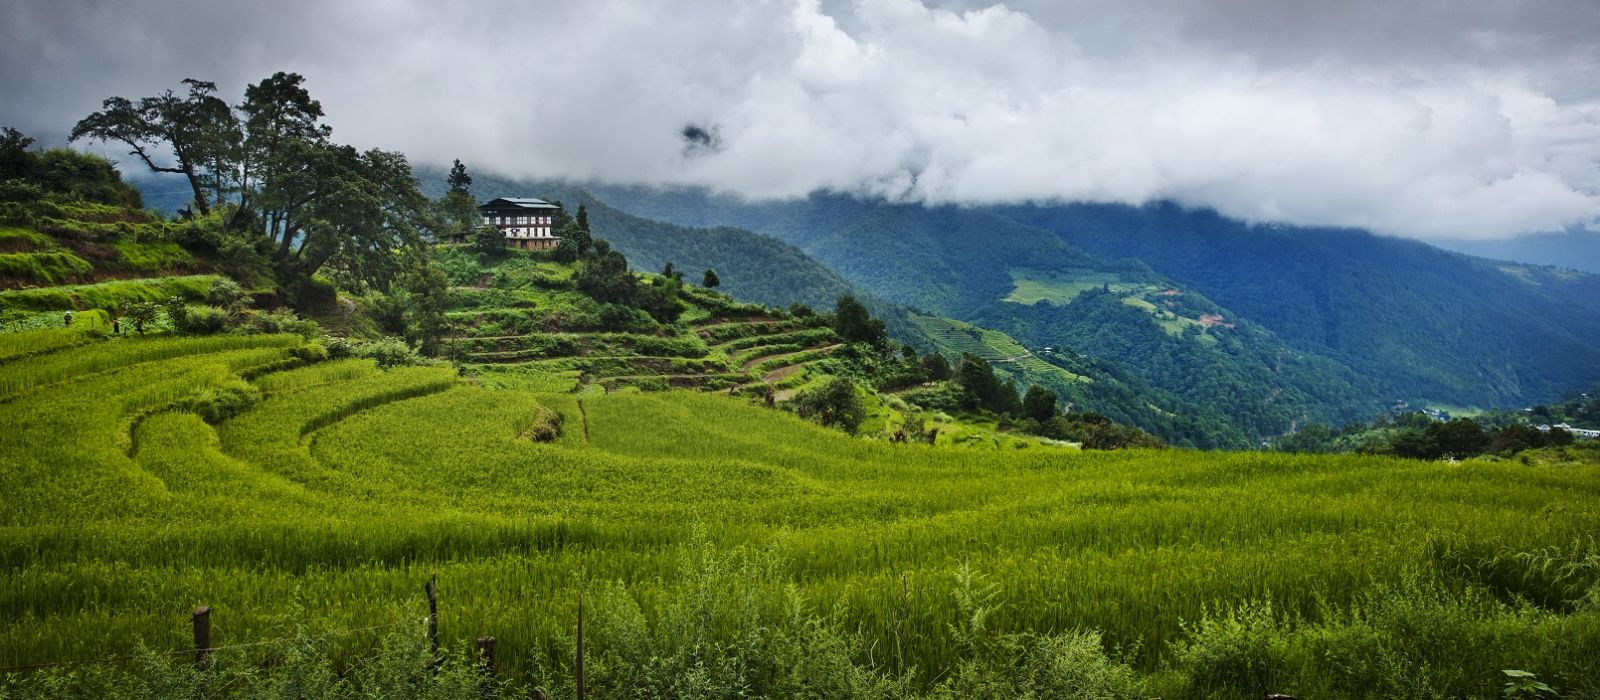 Luxury Bhutan & Thailand Paradise Islands Tour Trip 2